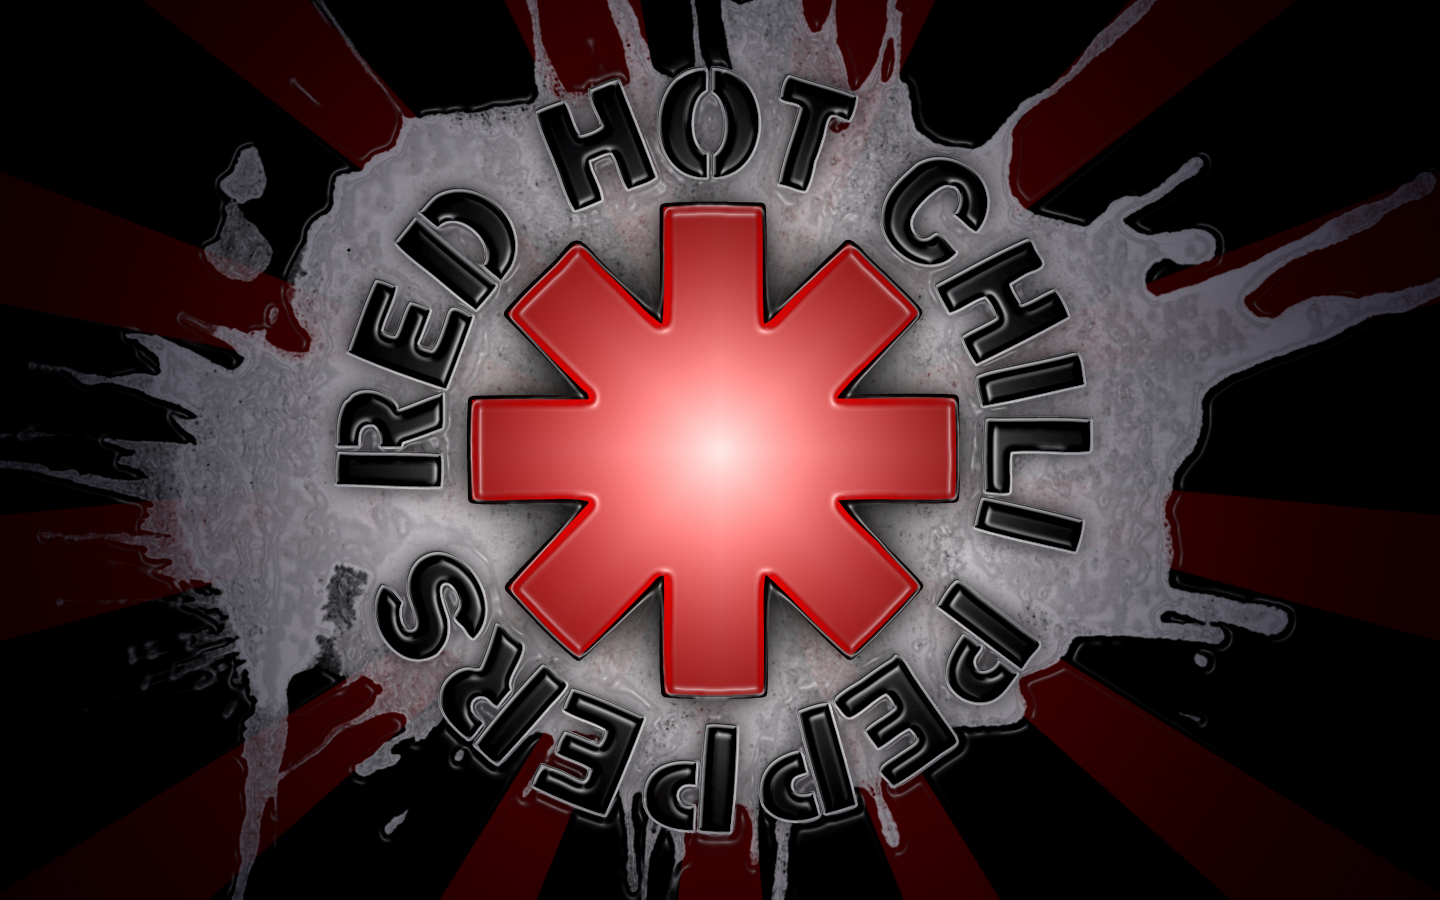 Red Hot Chili Peppers By Saccamano On Deviantart